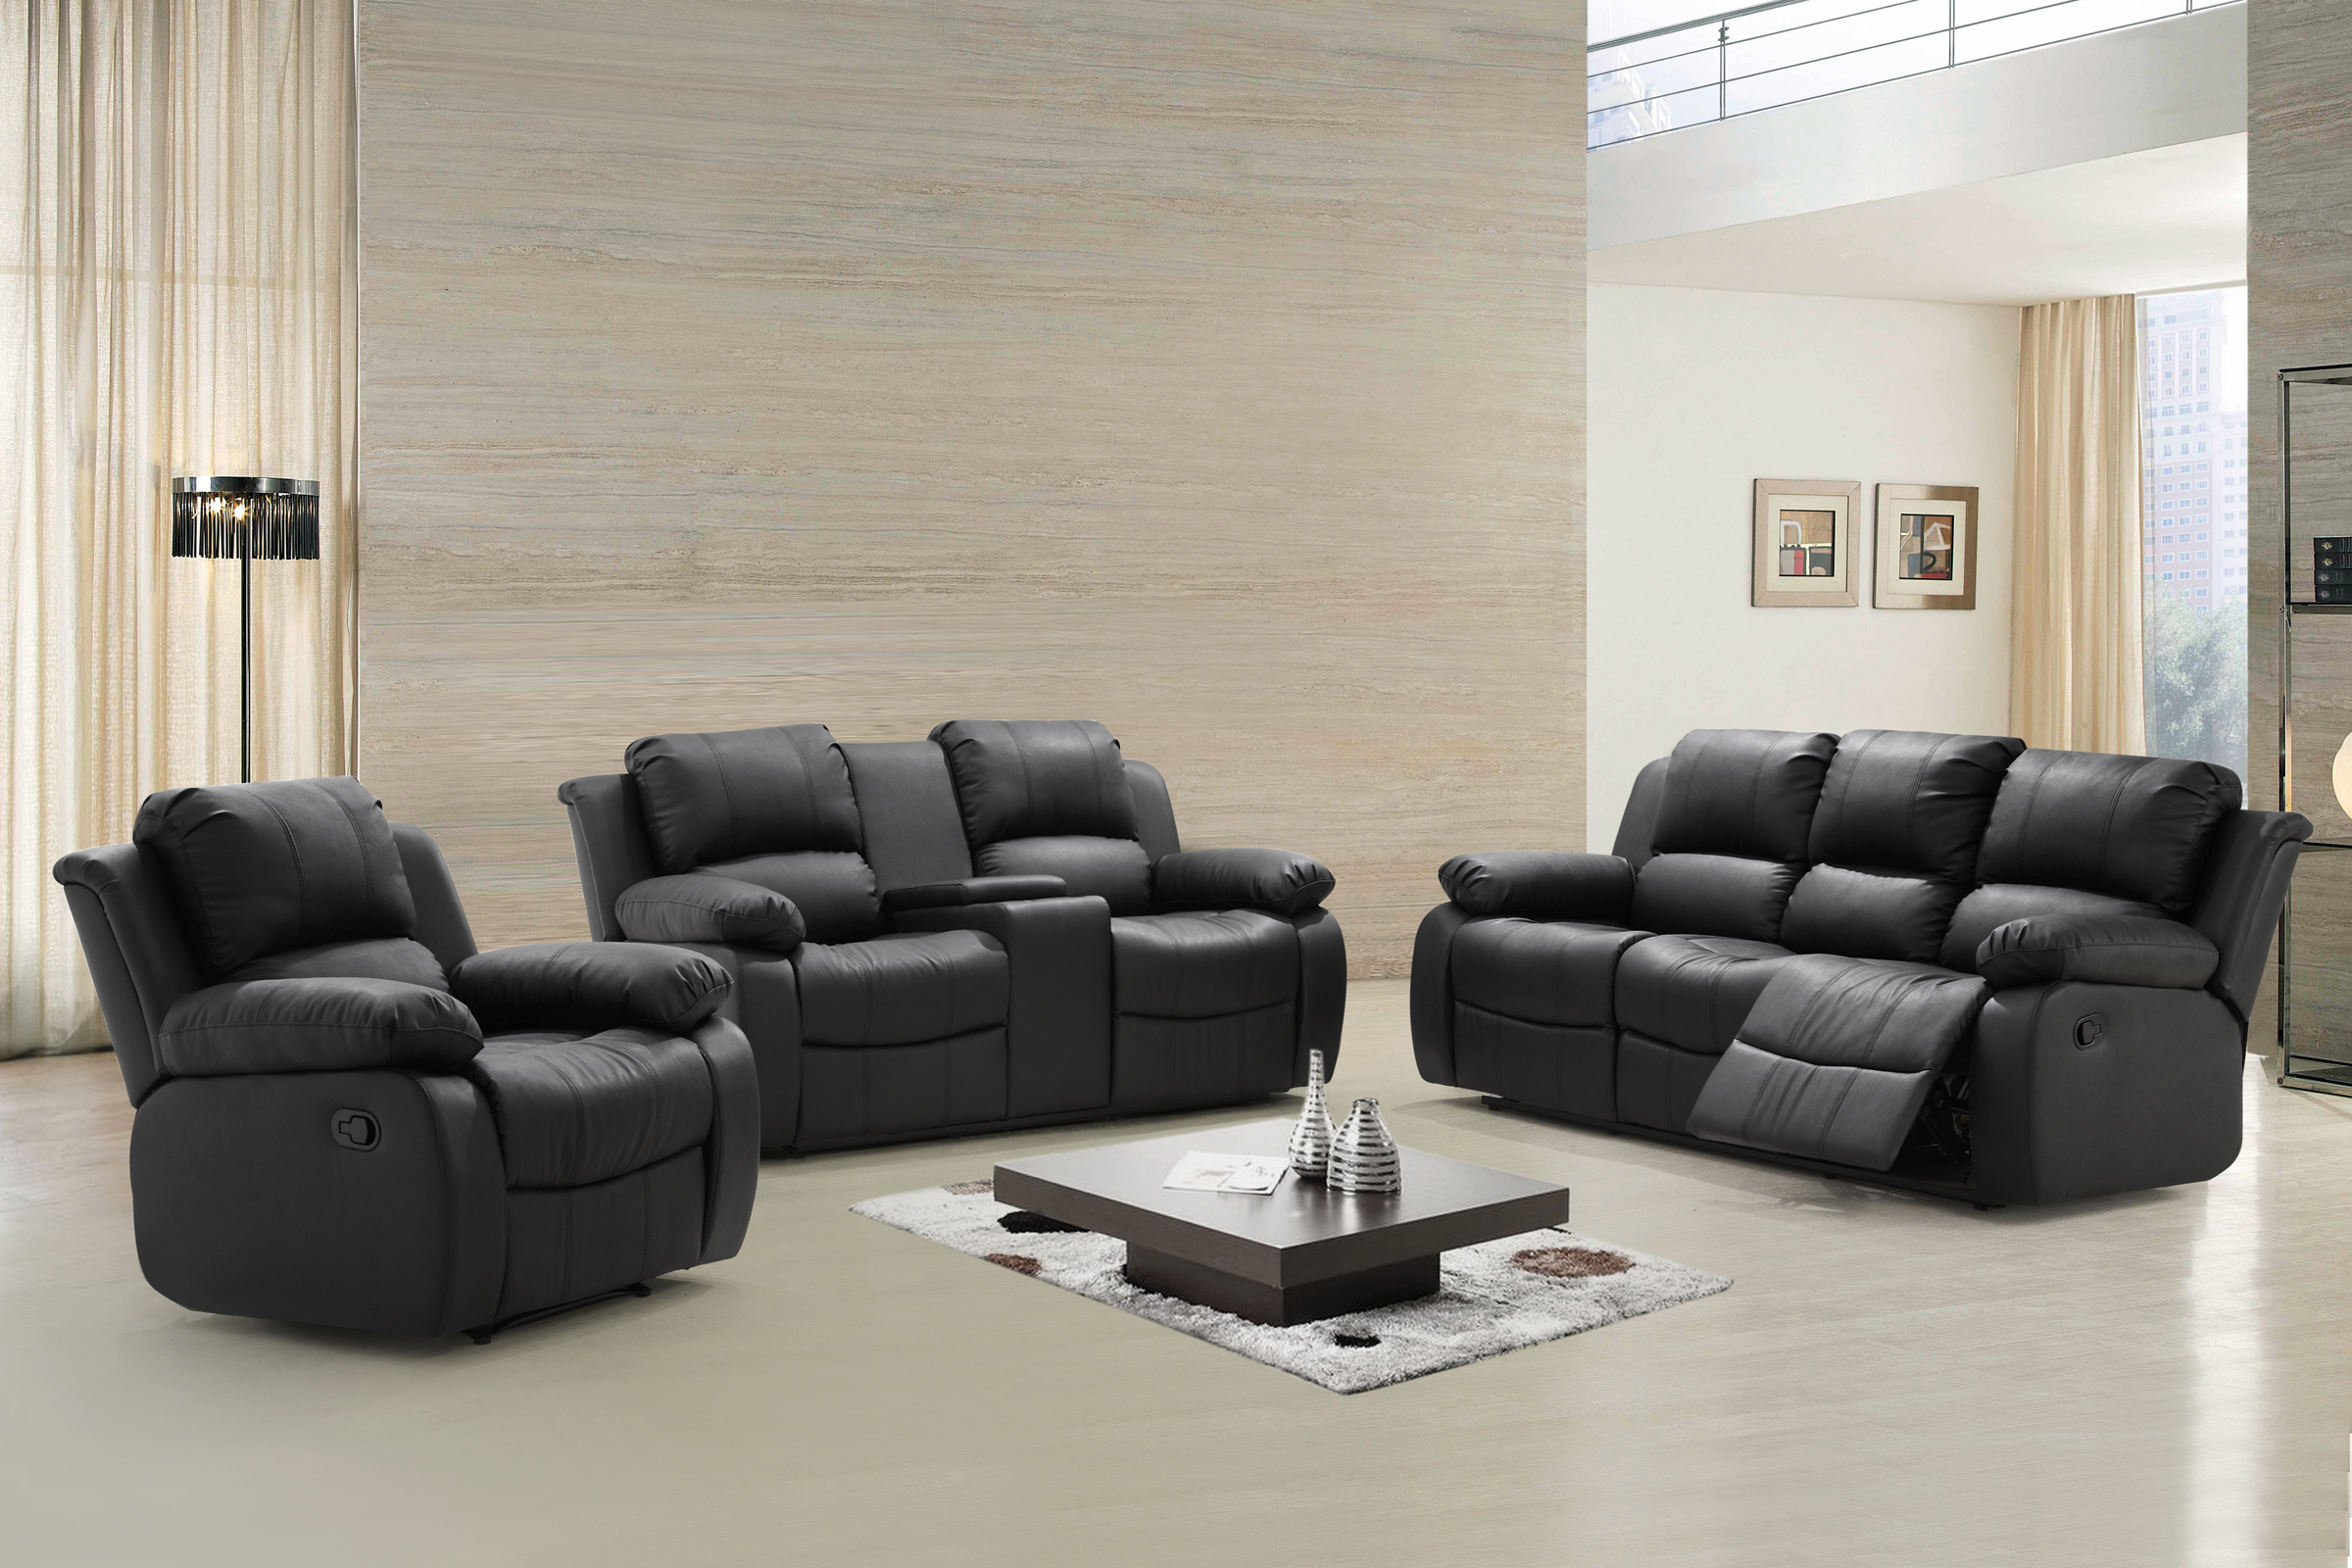 Zoey 3 Pc Black Bonded Leather Living Room Reclining Sofa Set With Tea  Table, Center